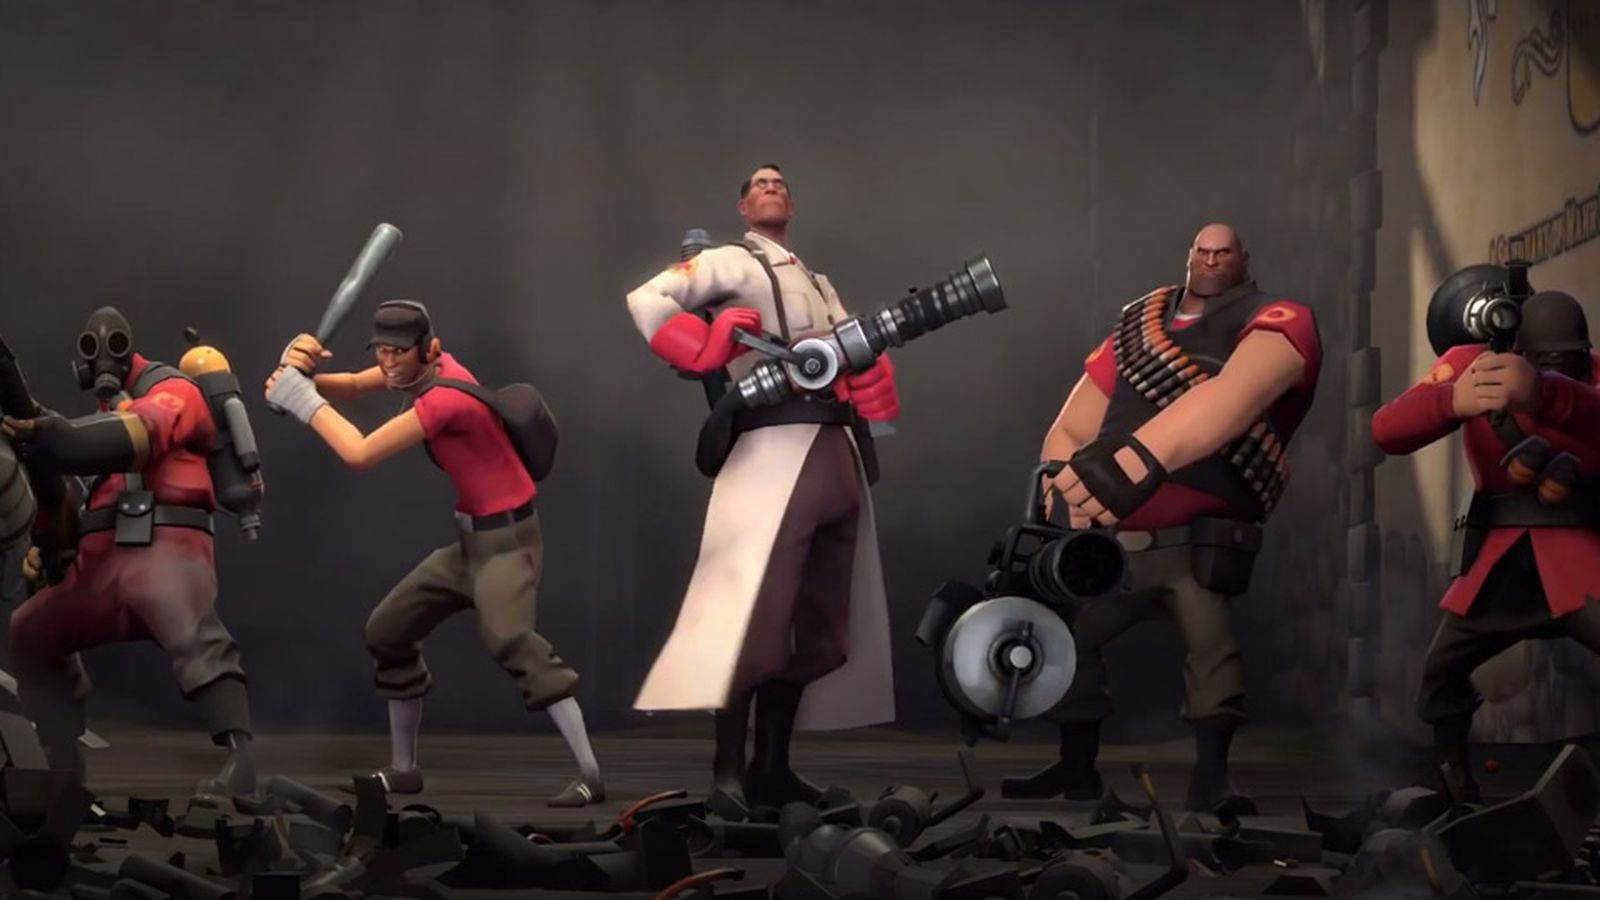 Team Fortress 2 is finally getting competitive matchmaking - Polygon